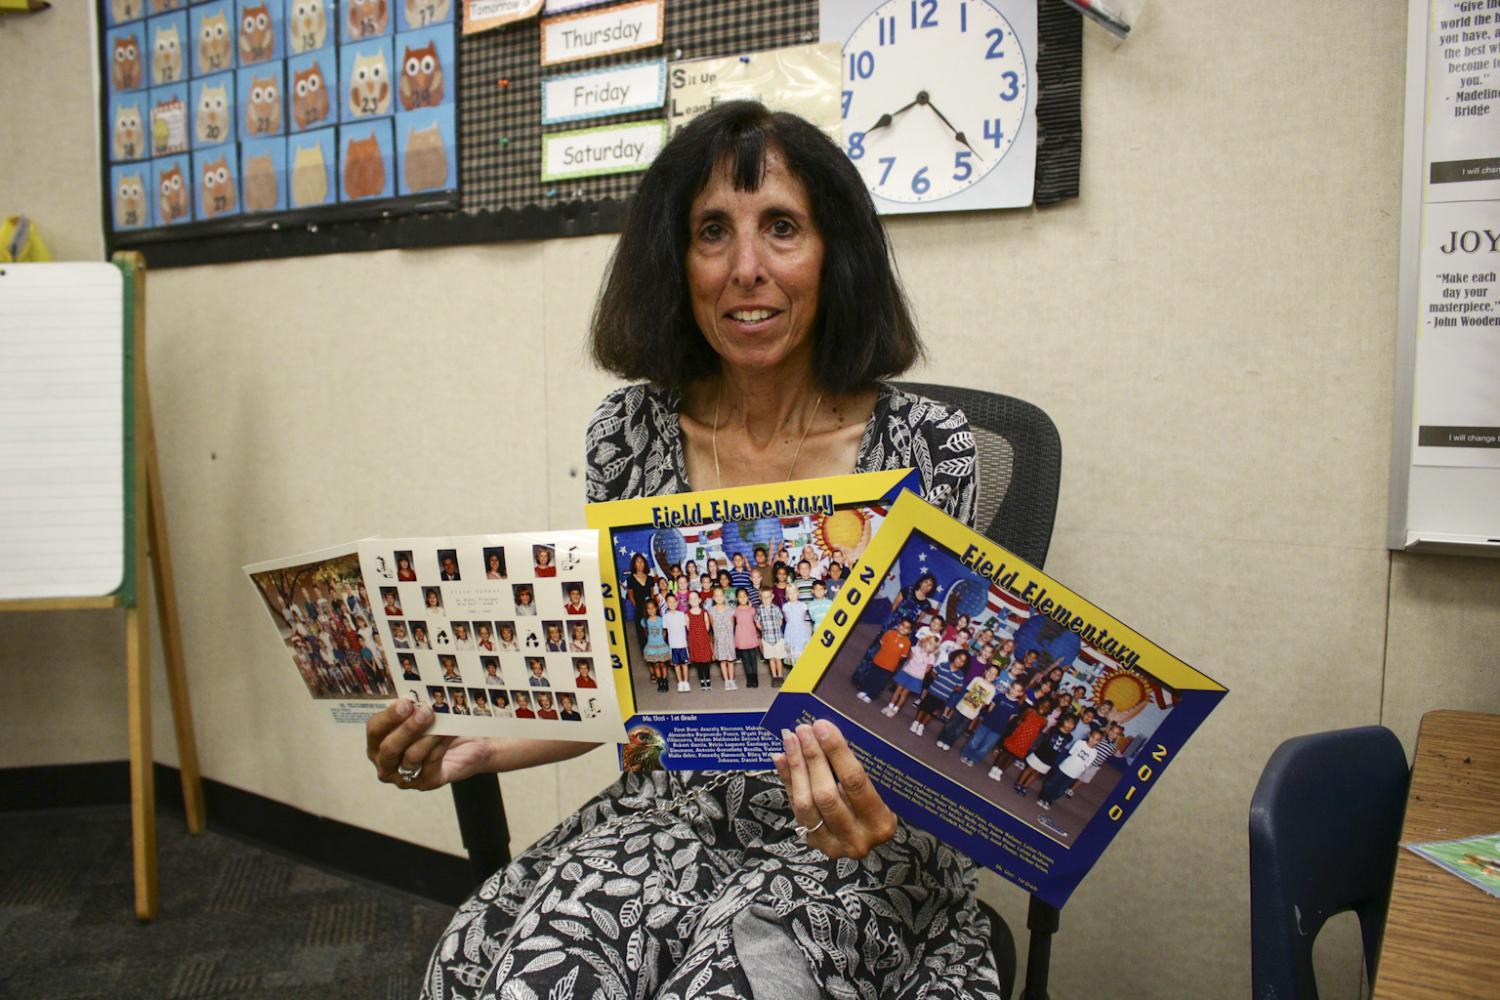 Ms. Ucci holds up class pictures from previous years